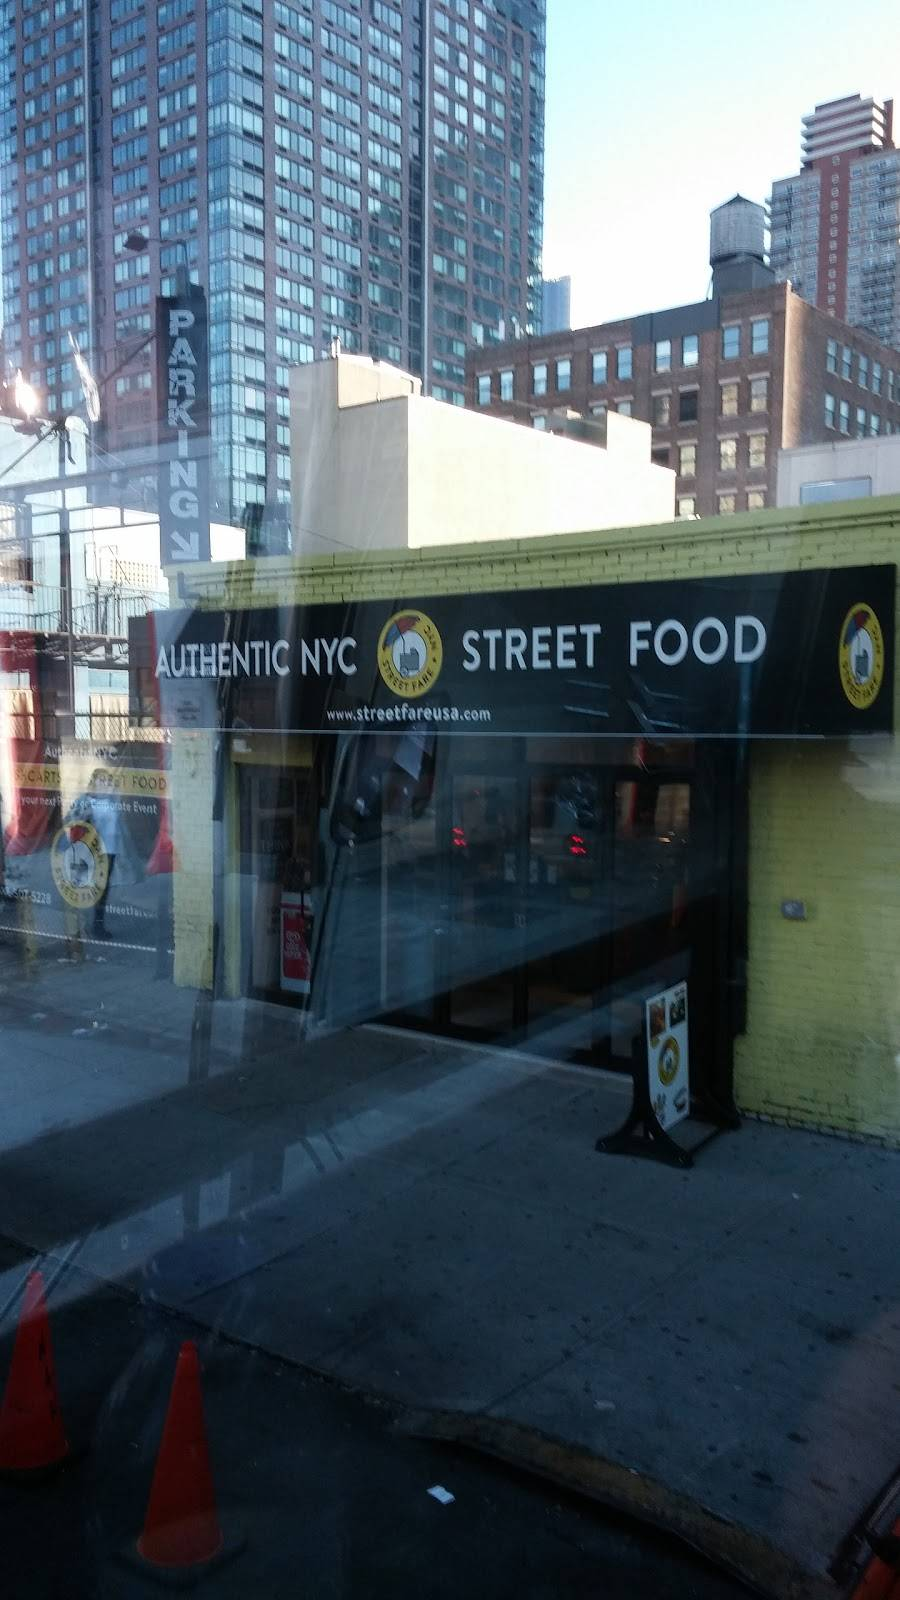 Authentic NYC Street Food | restaurant | 601-699 W 45th St, New York, NY 10036, USA